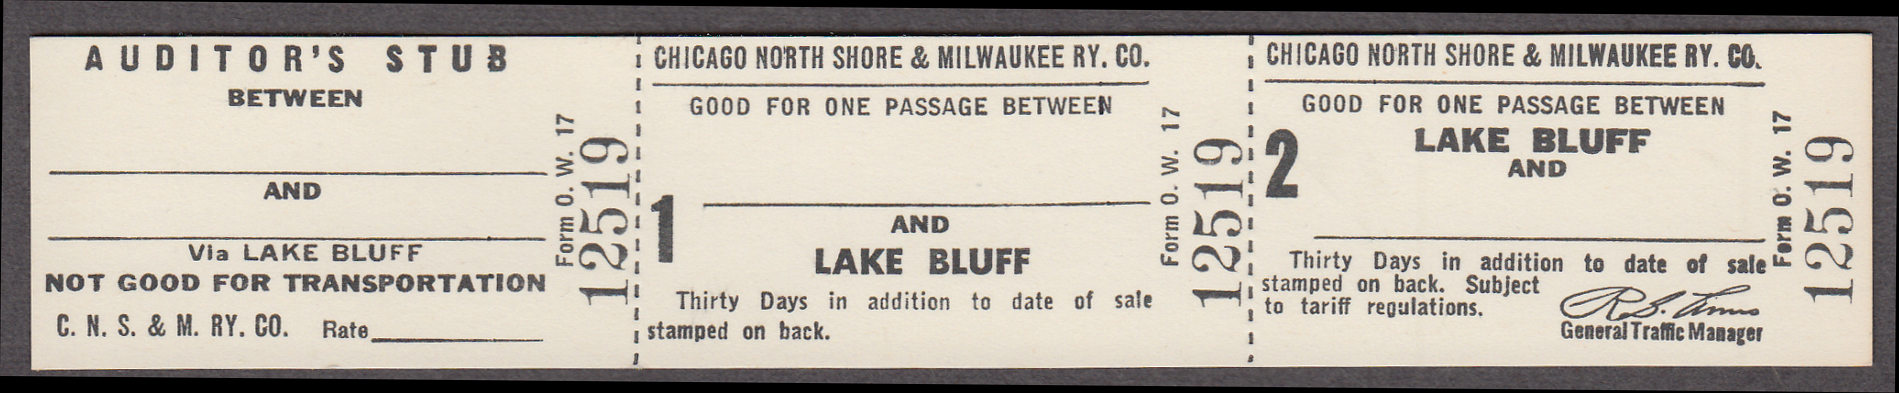 Image for Chicago North Shore & Milwaukee Ry Lake Bluff-any station unused ticket